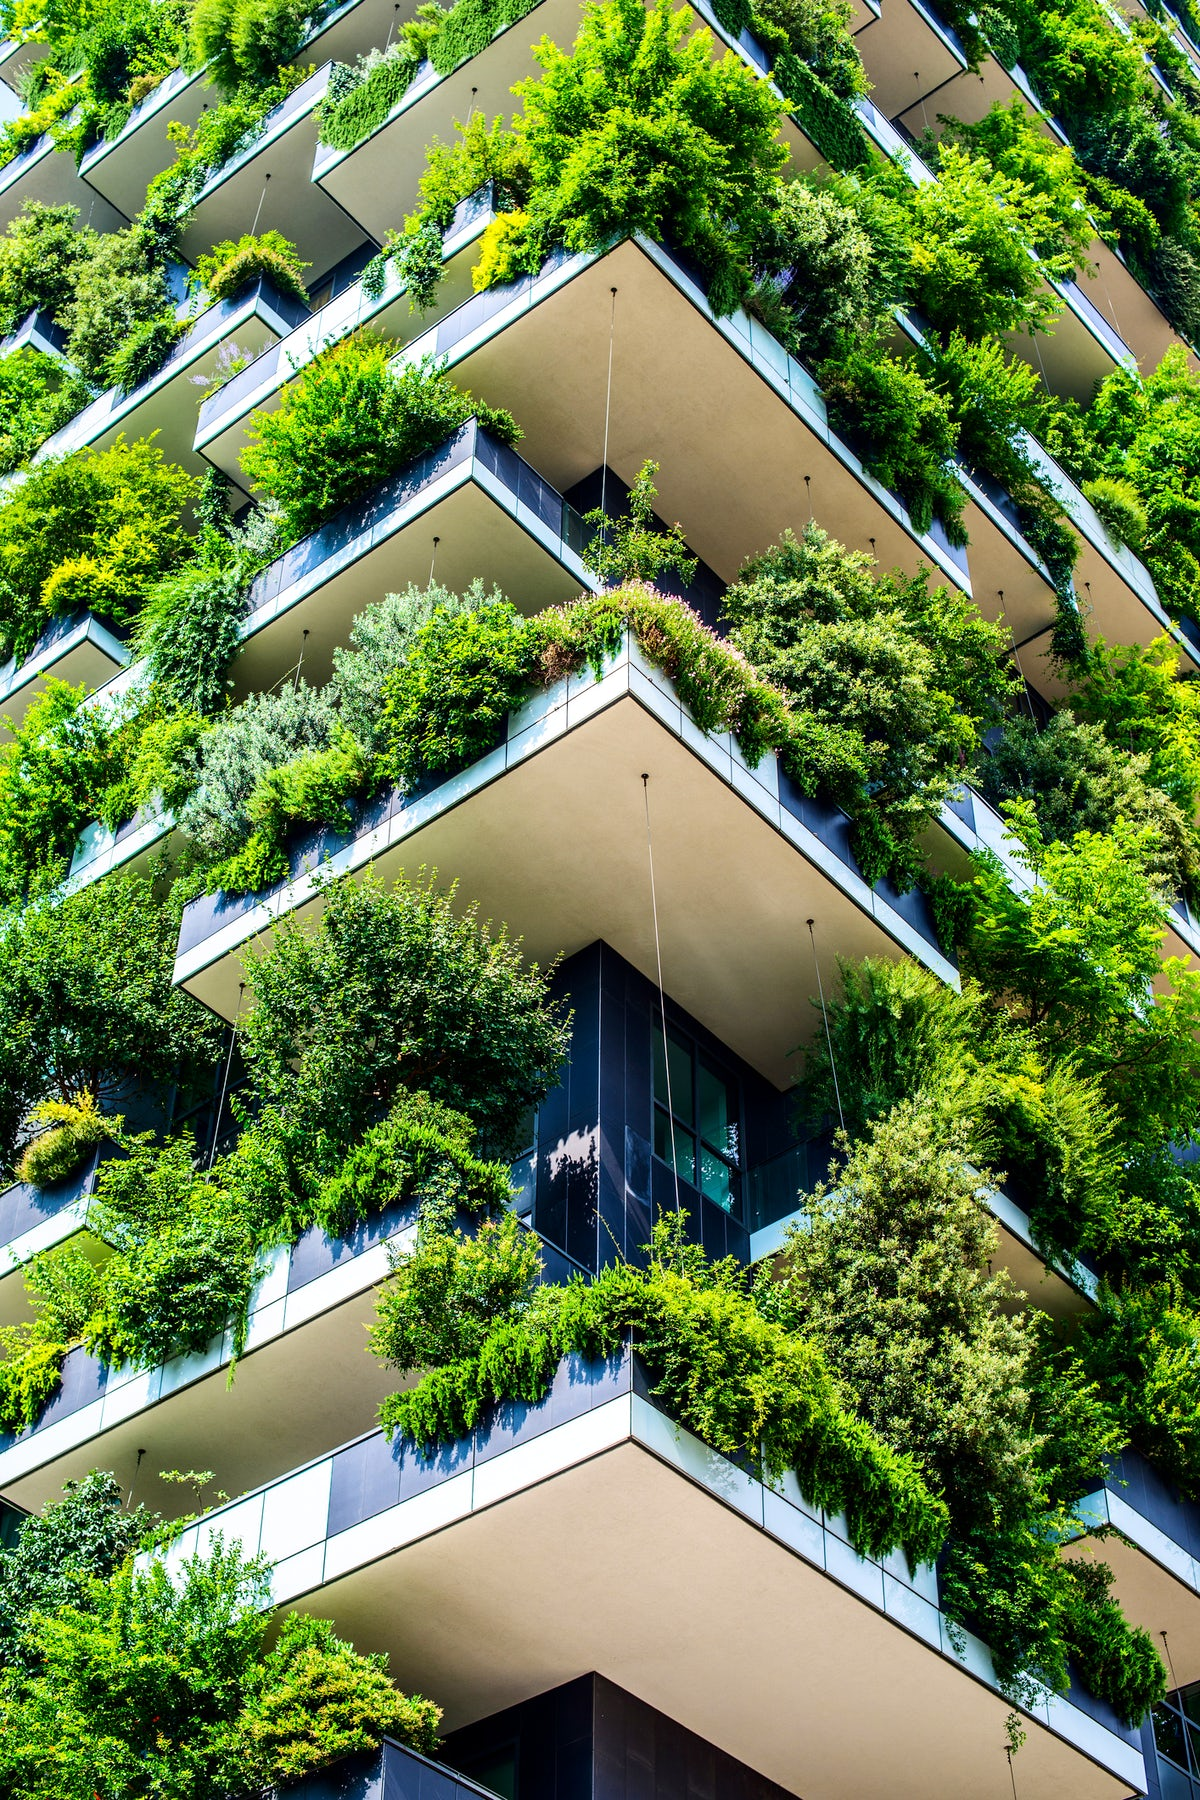 The Vertical Forest, Innovative Architecture in Milan